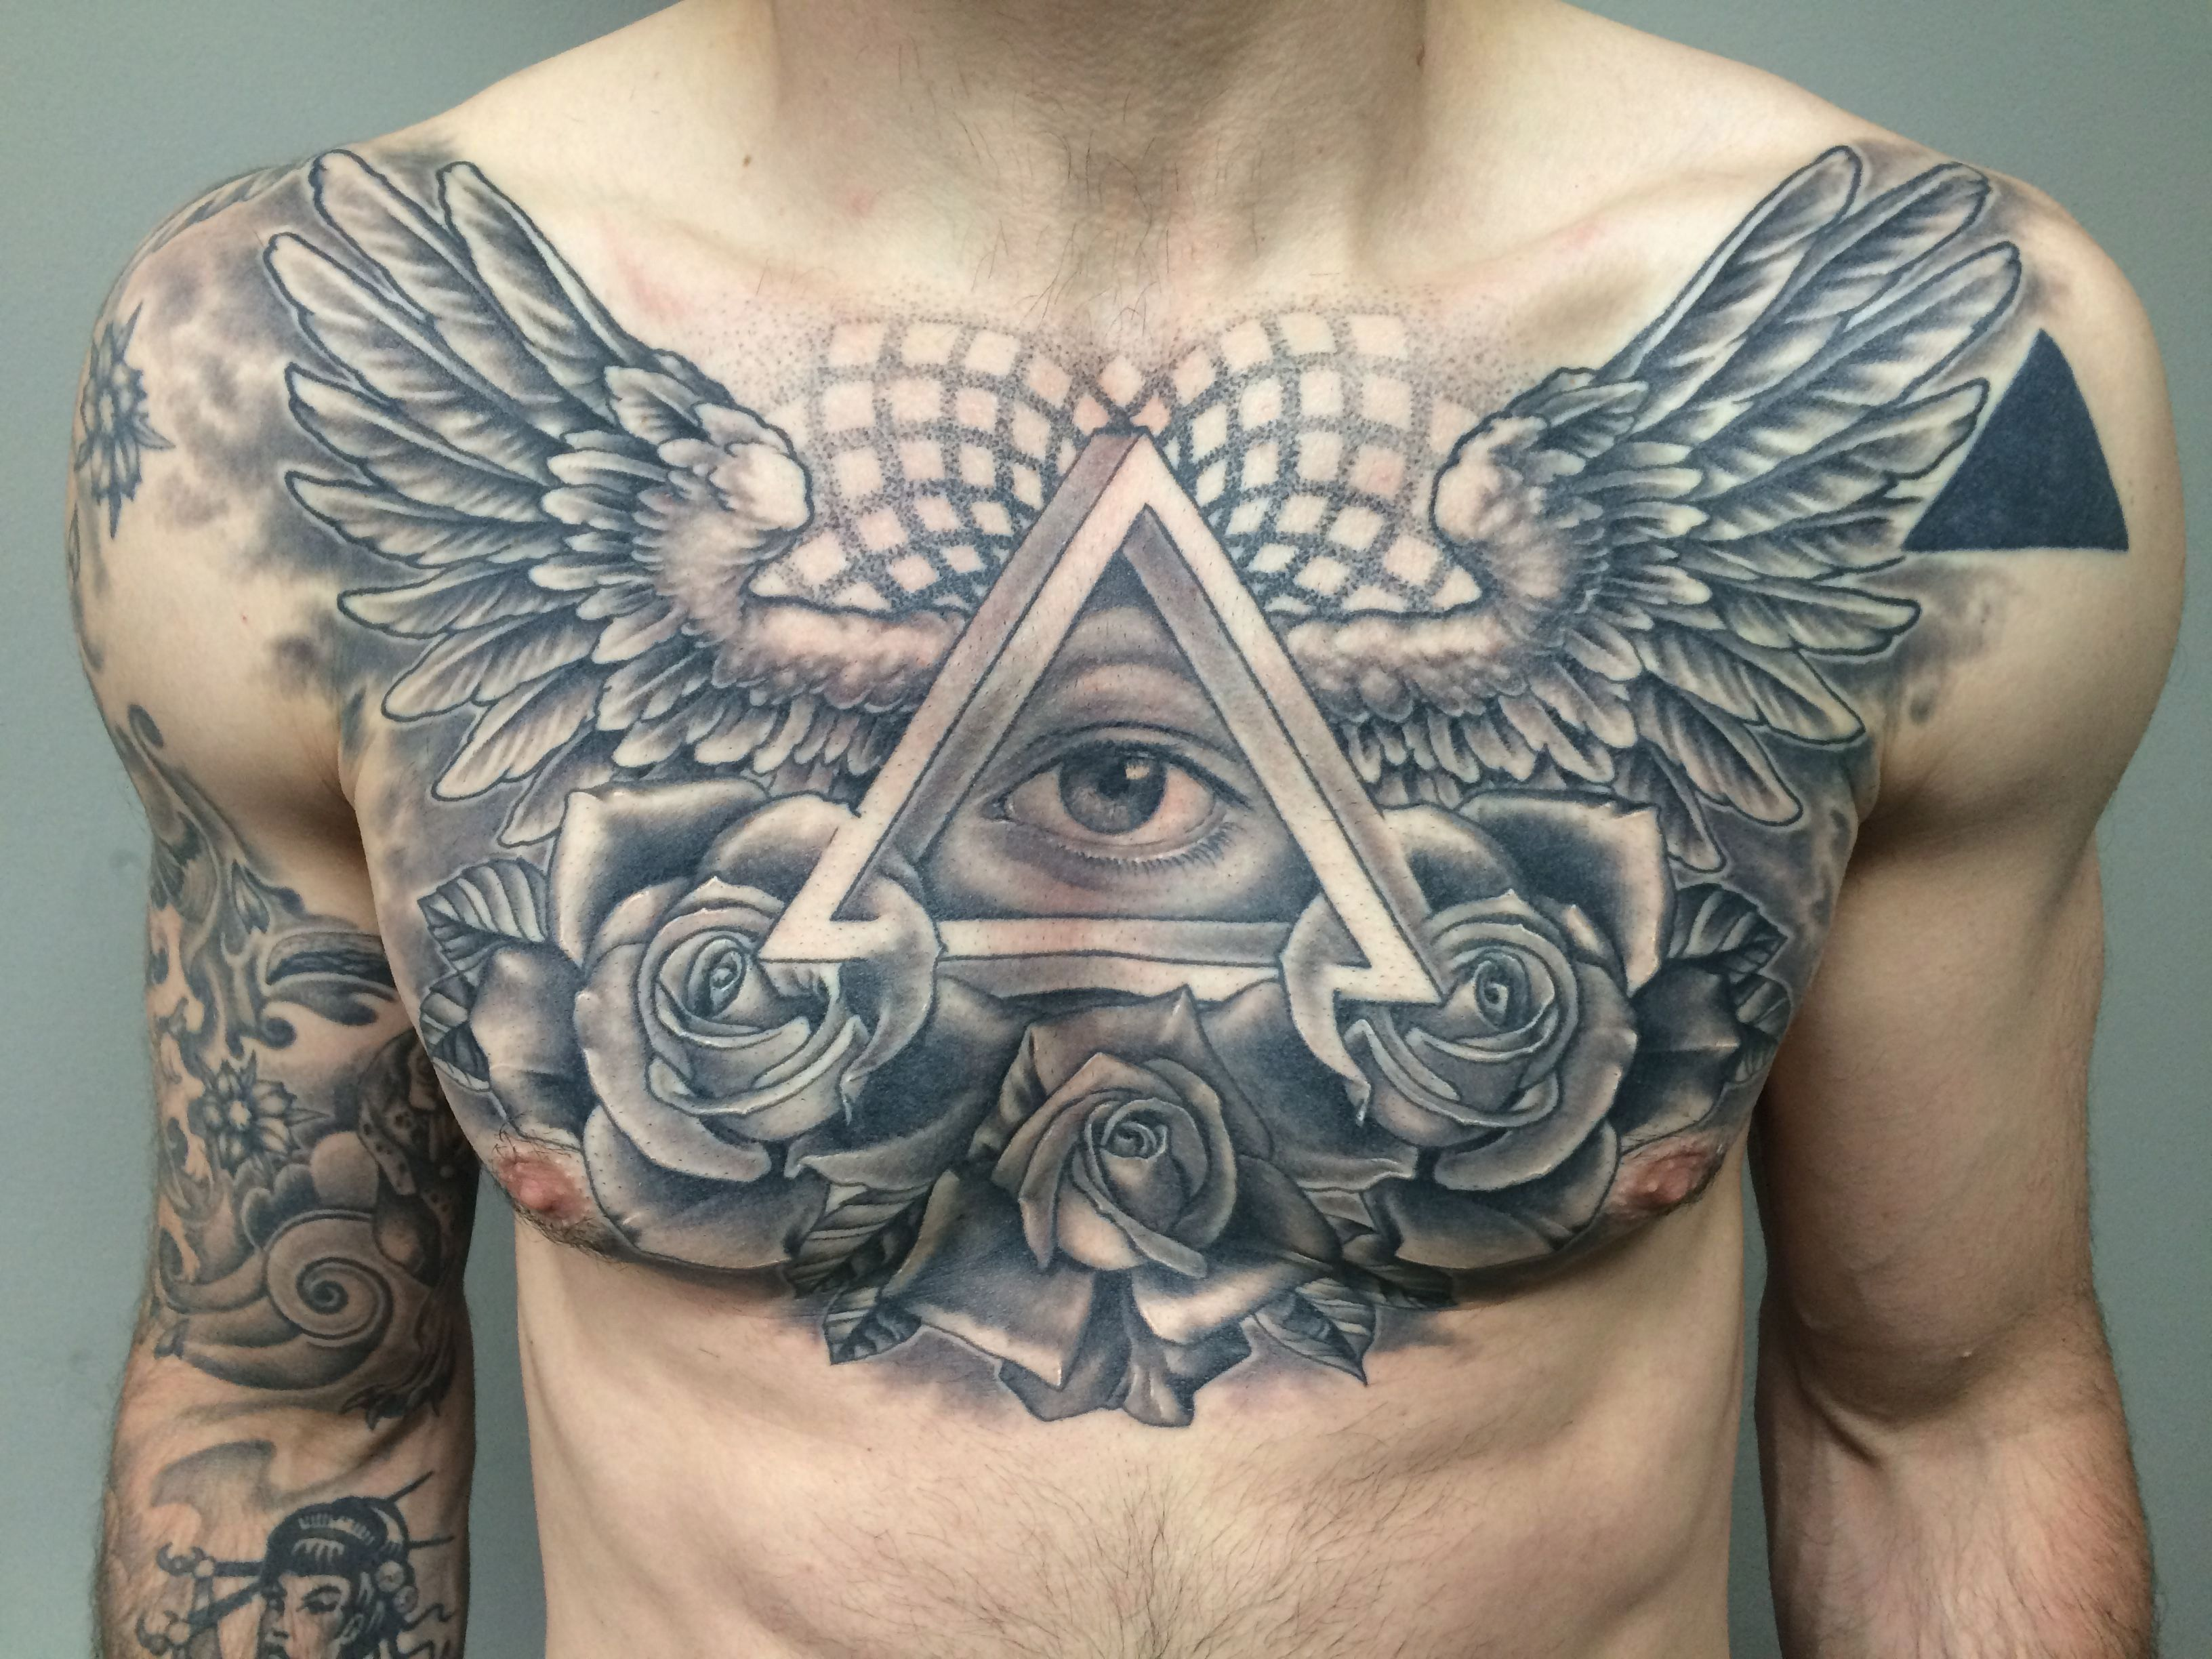 20 Chest Piece Tattoos Designs   Cool chest tattoos, Pieces tattoo ...